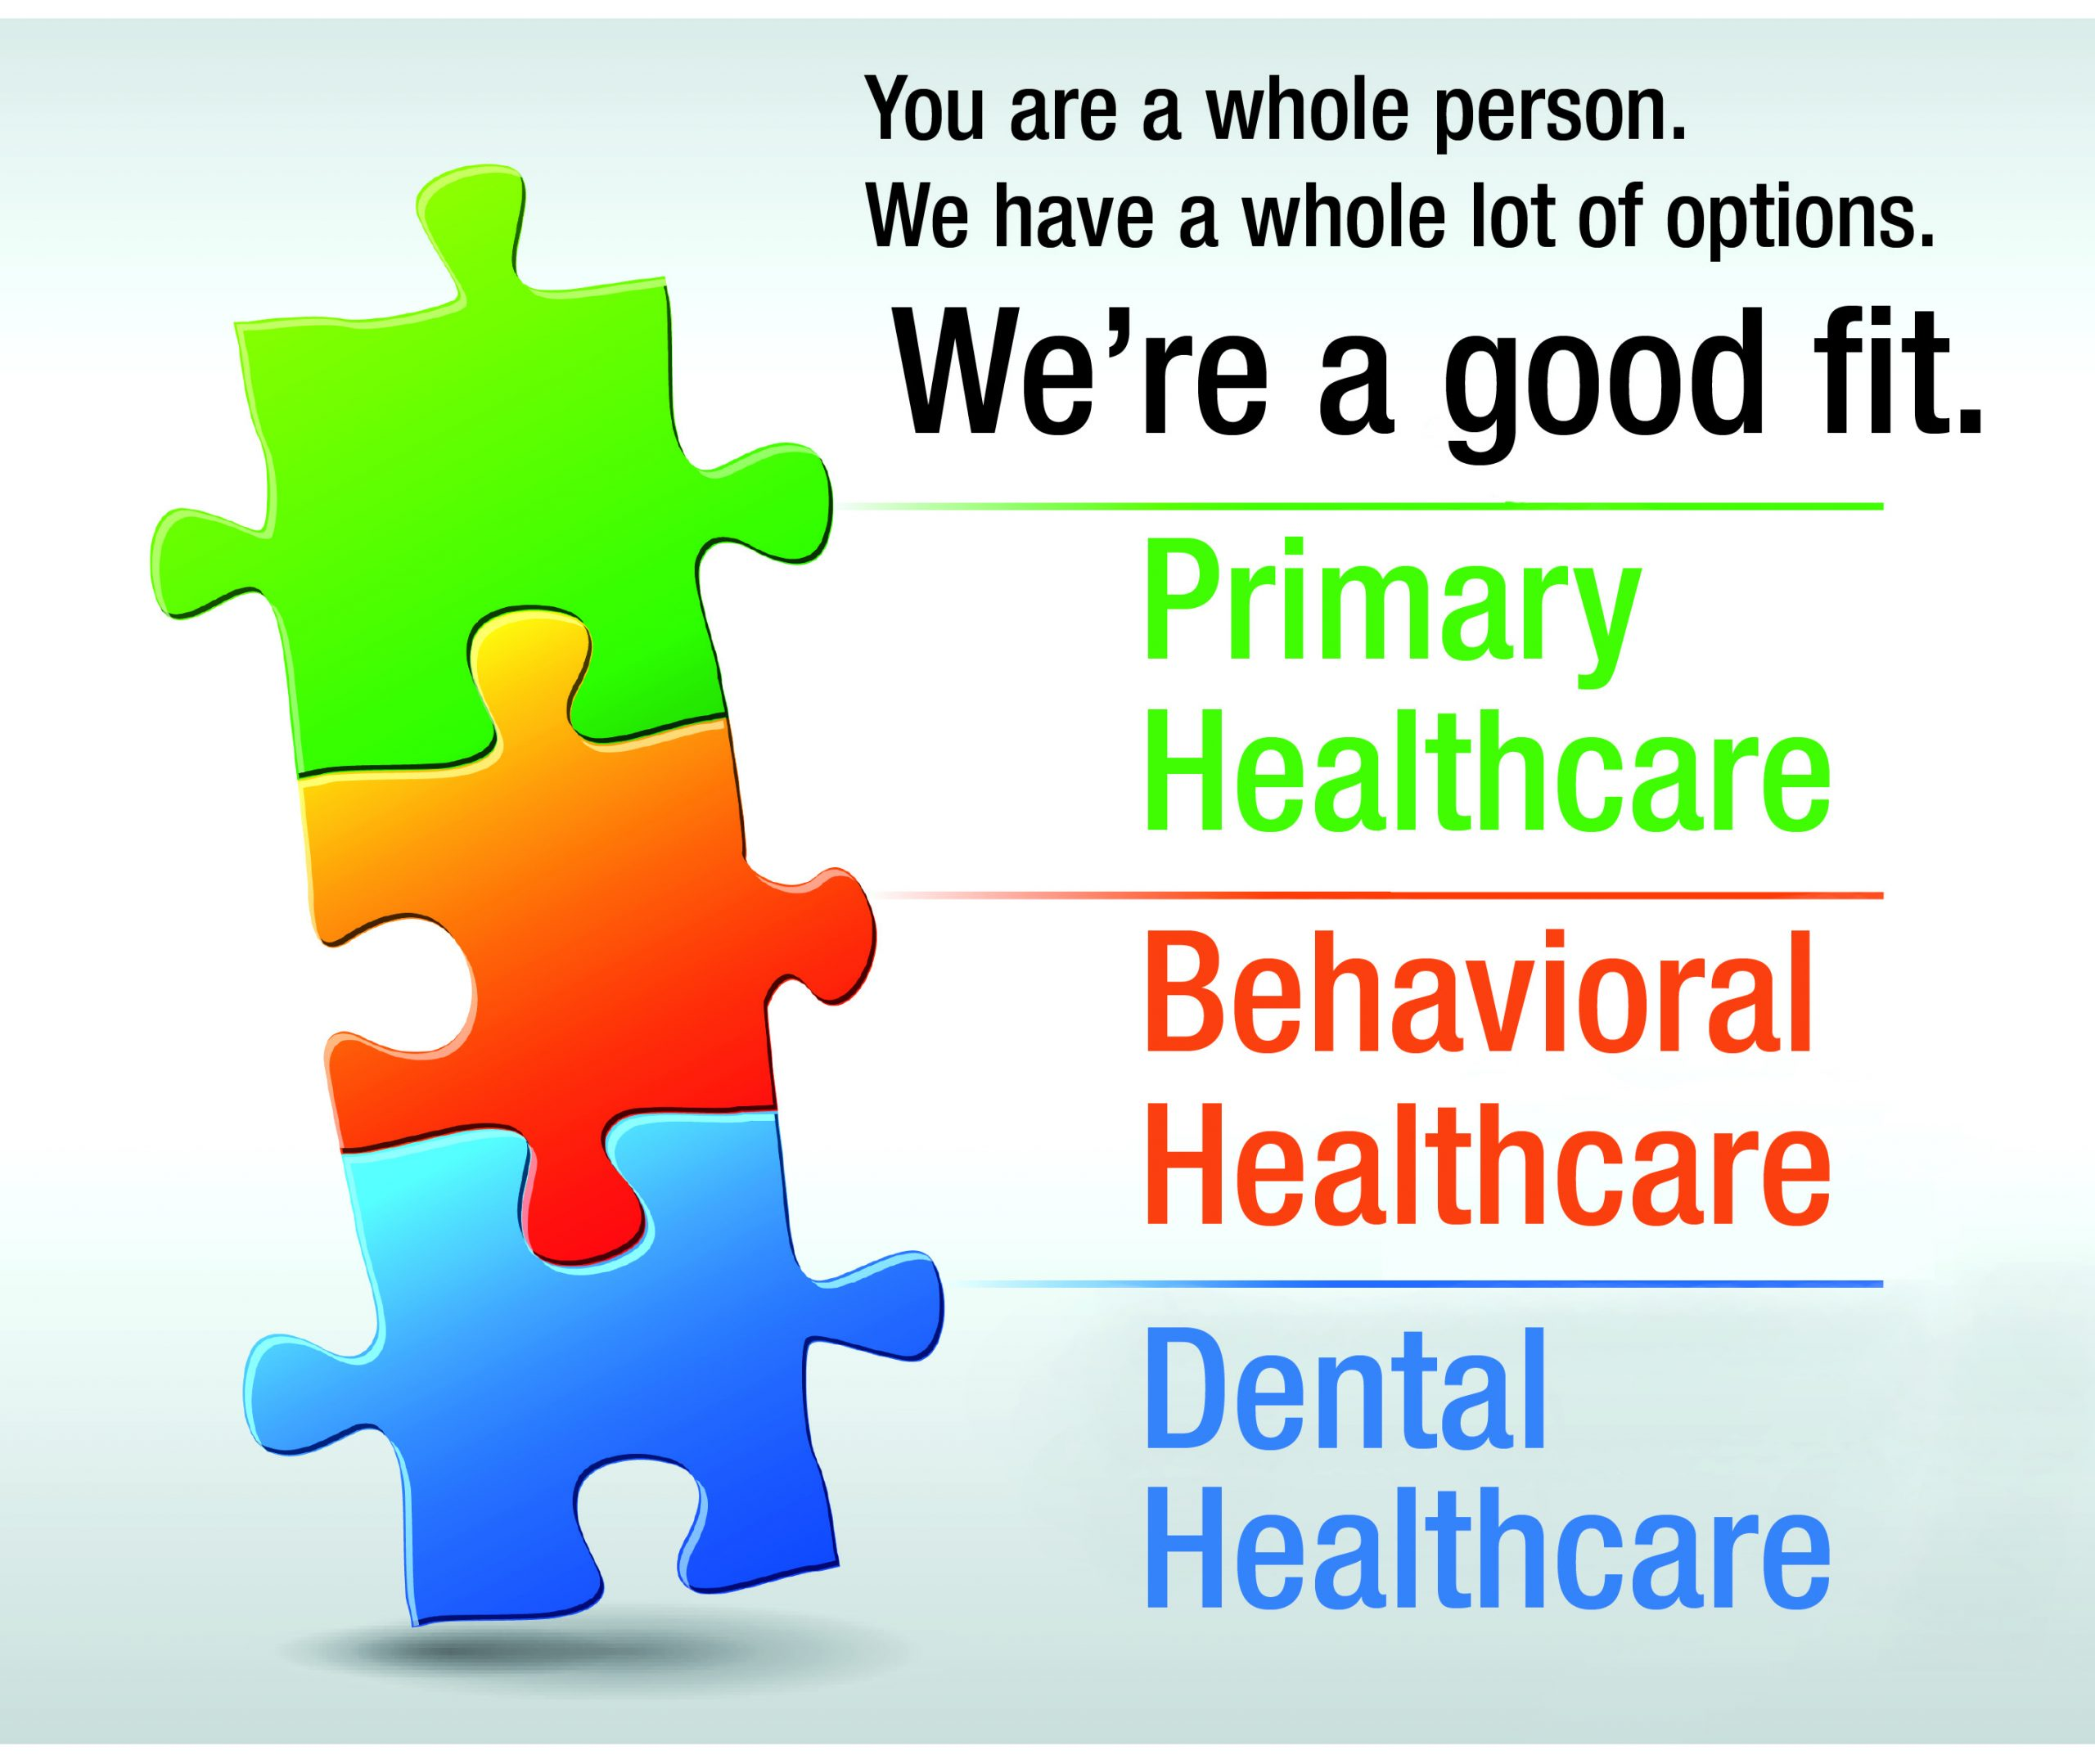 Axis Health System integrates primary healthcare, behavioral healthcare and dental healthcare.